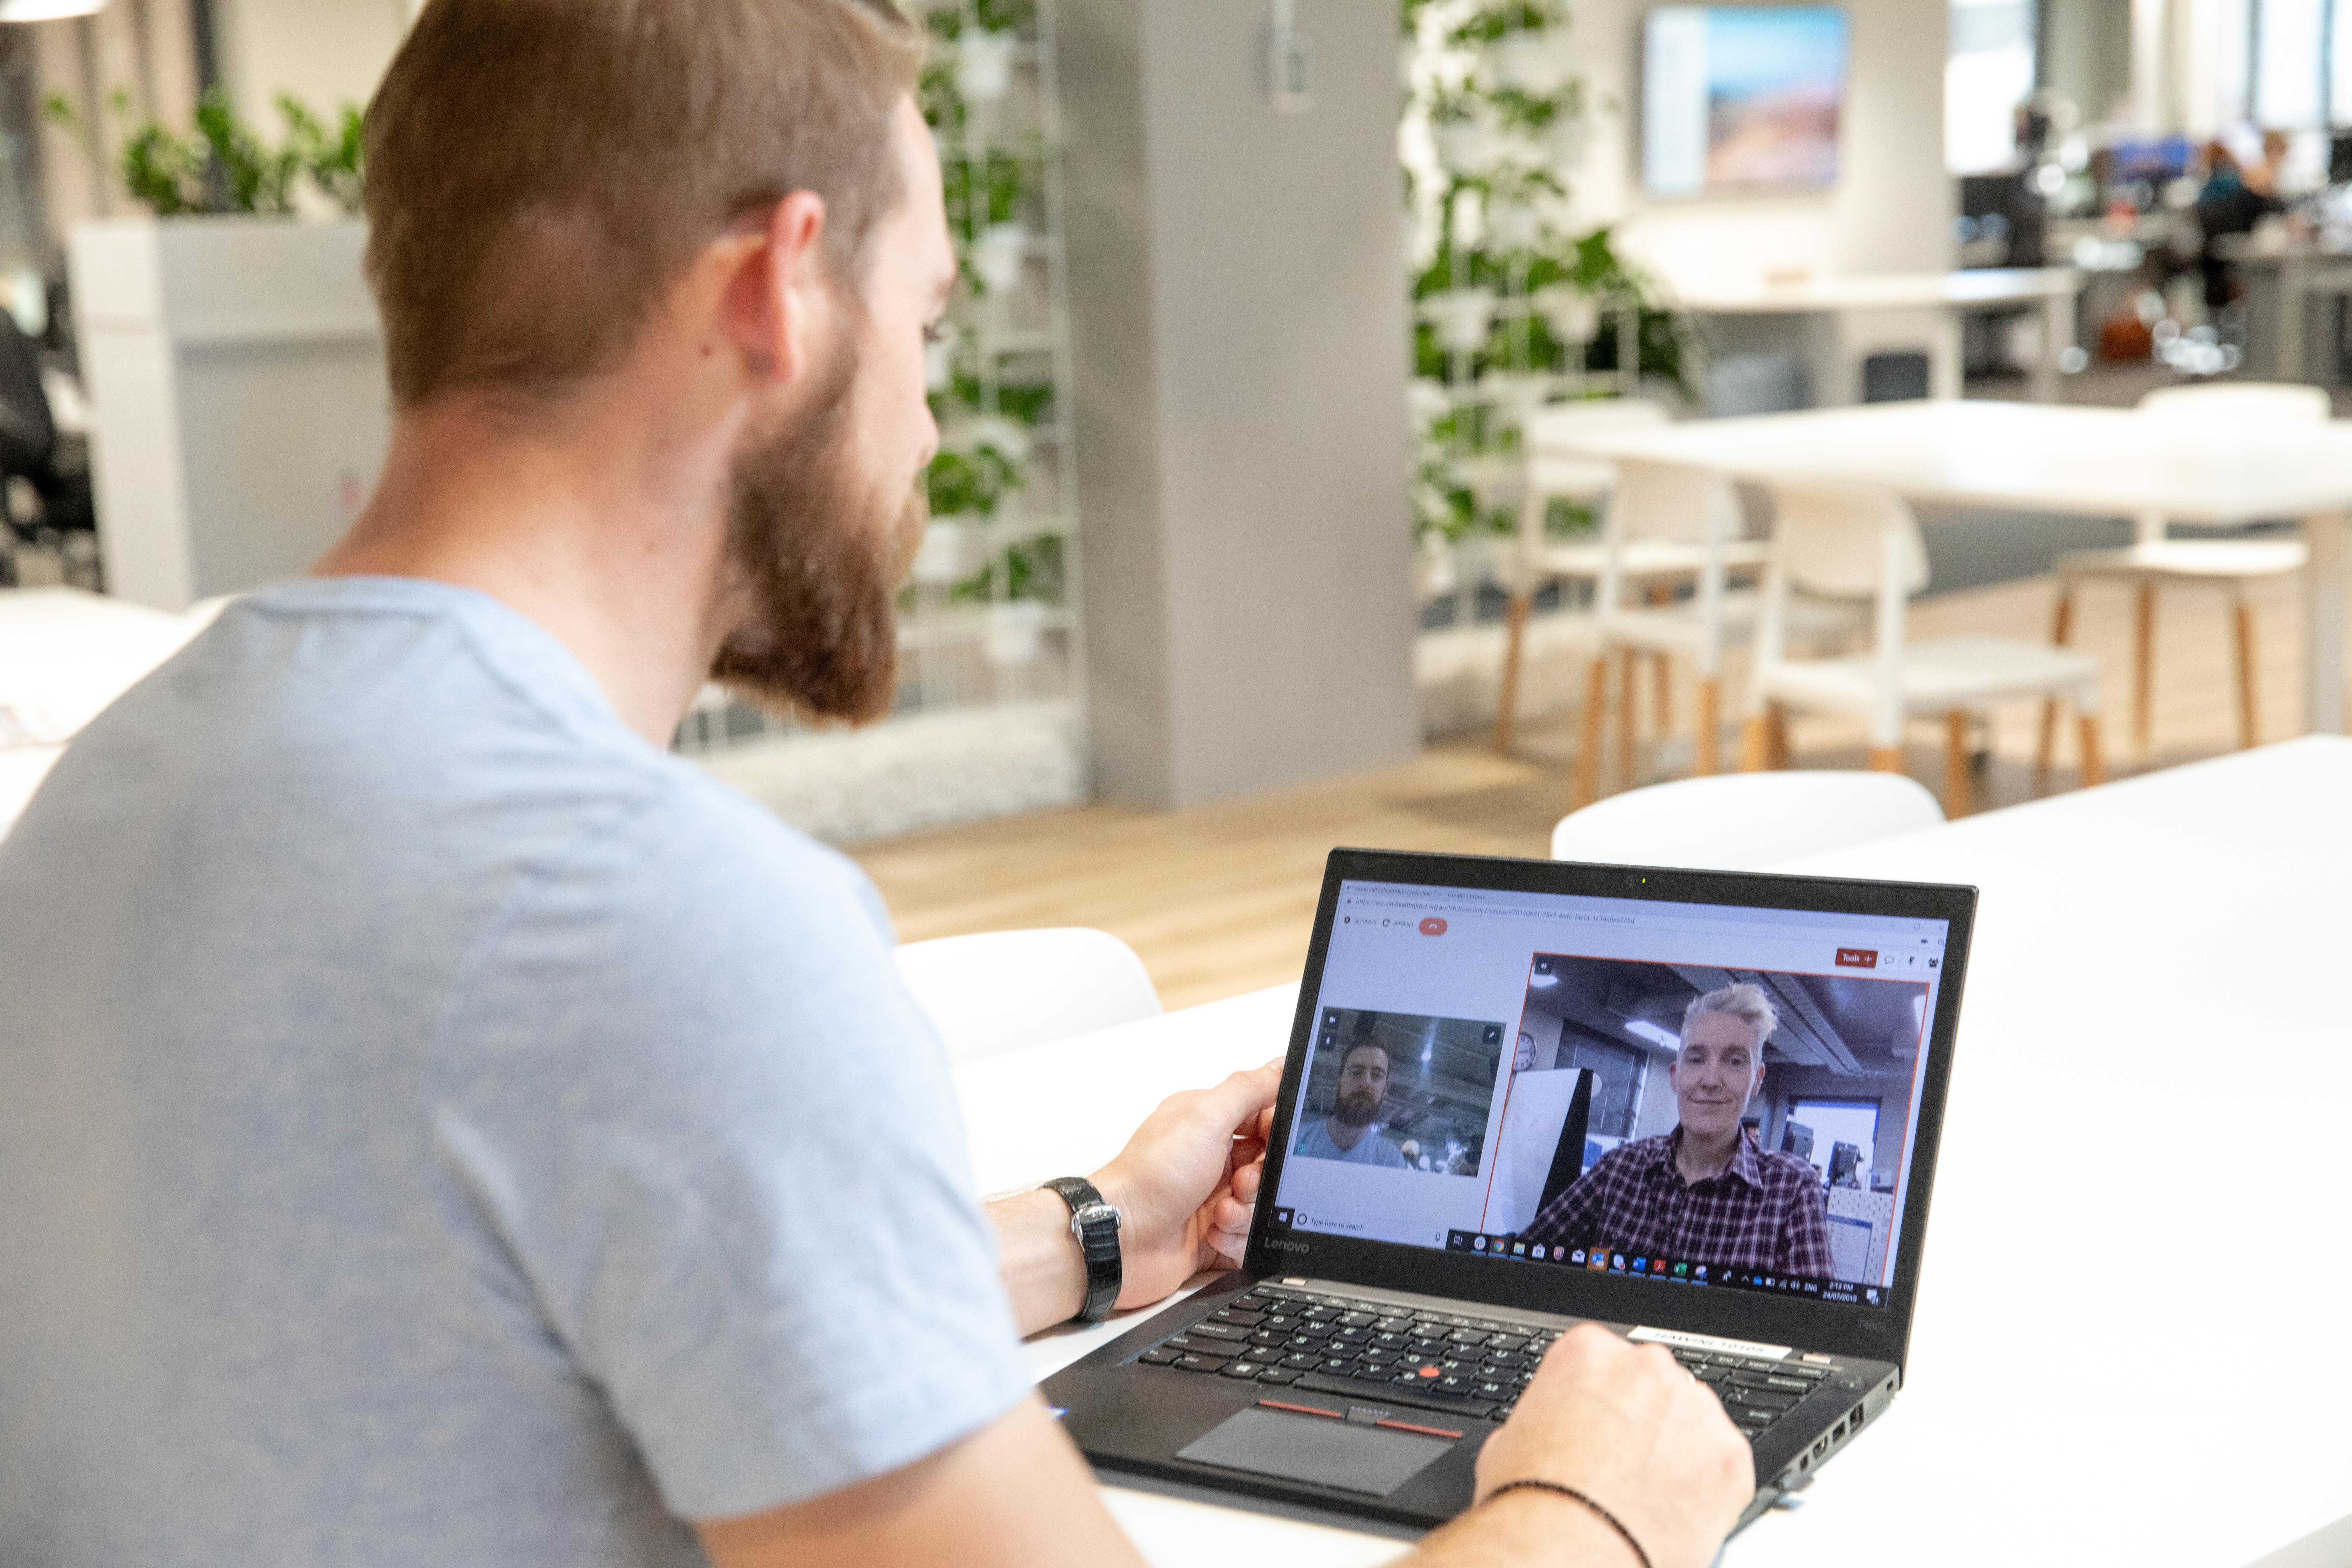 Healthdirect partners with Coviu to provide telehealth software to hospitals